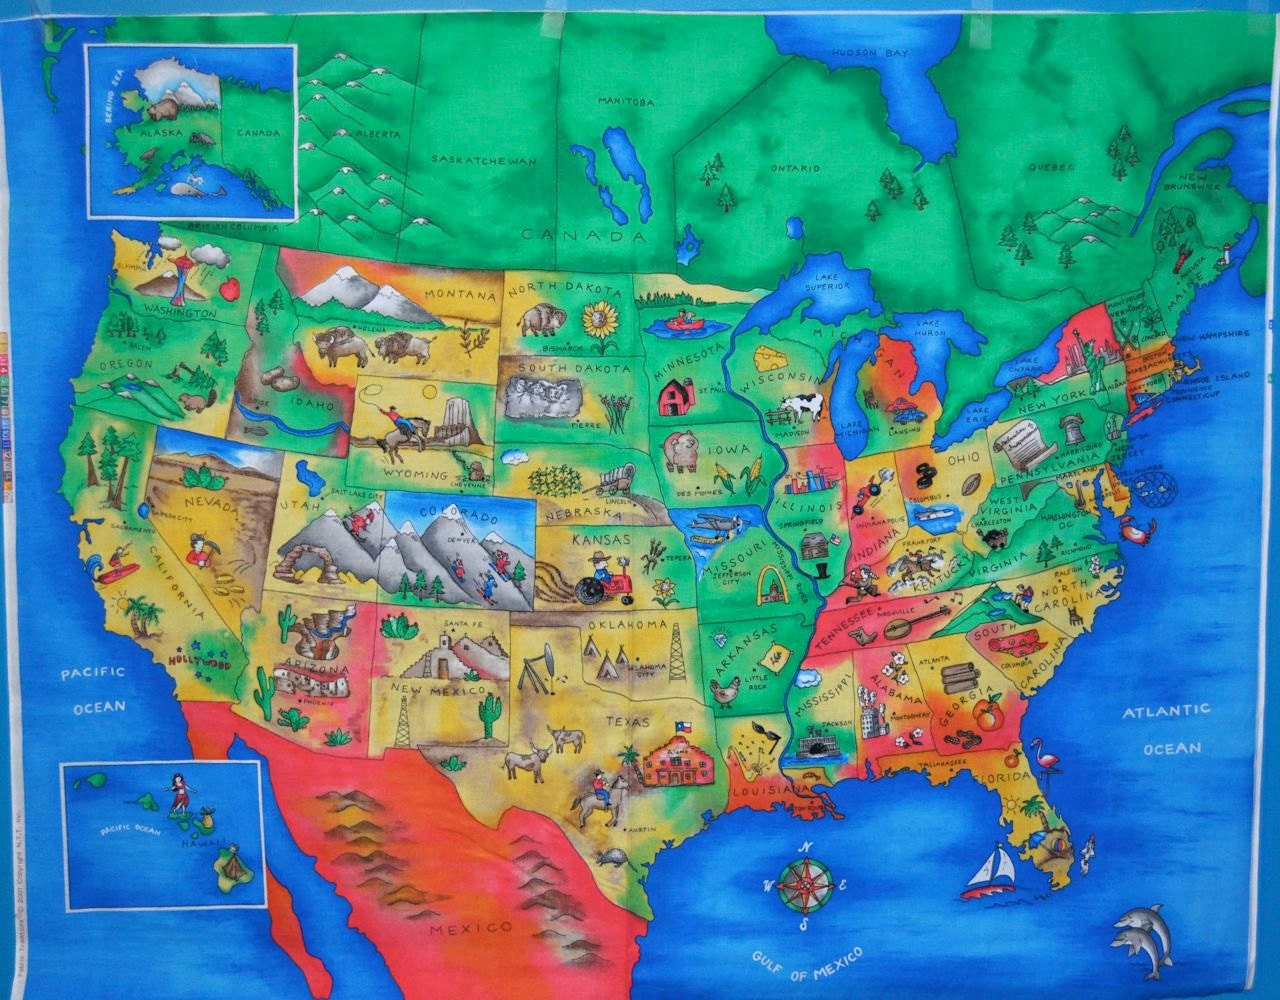 Usa Map With Landmarks Usa Get Free Image About World Maps - Usa map showing states